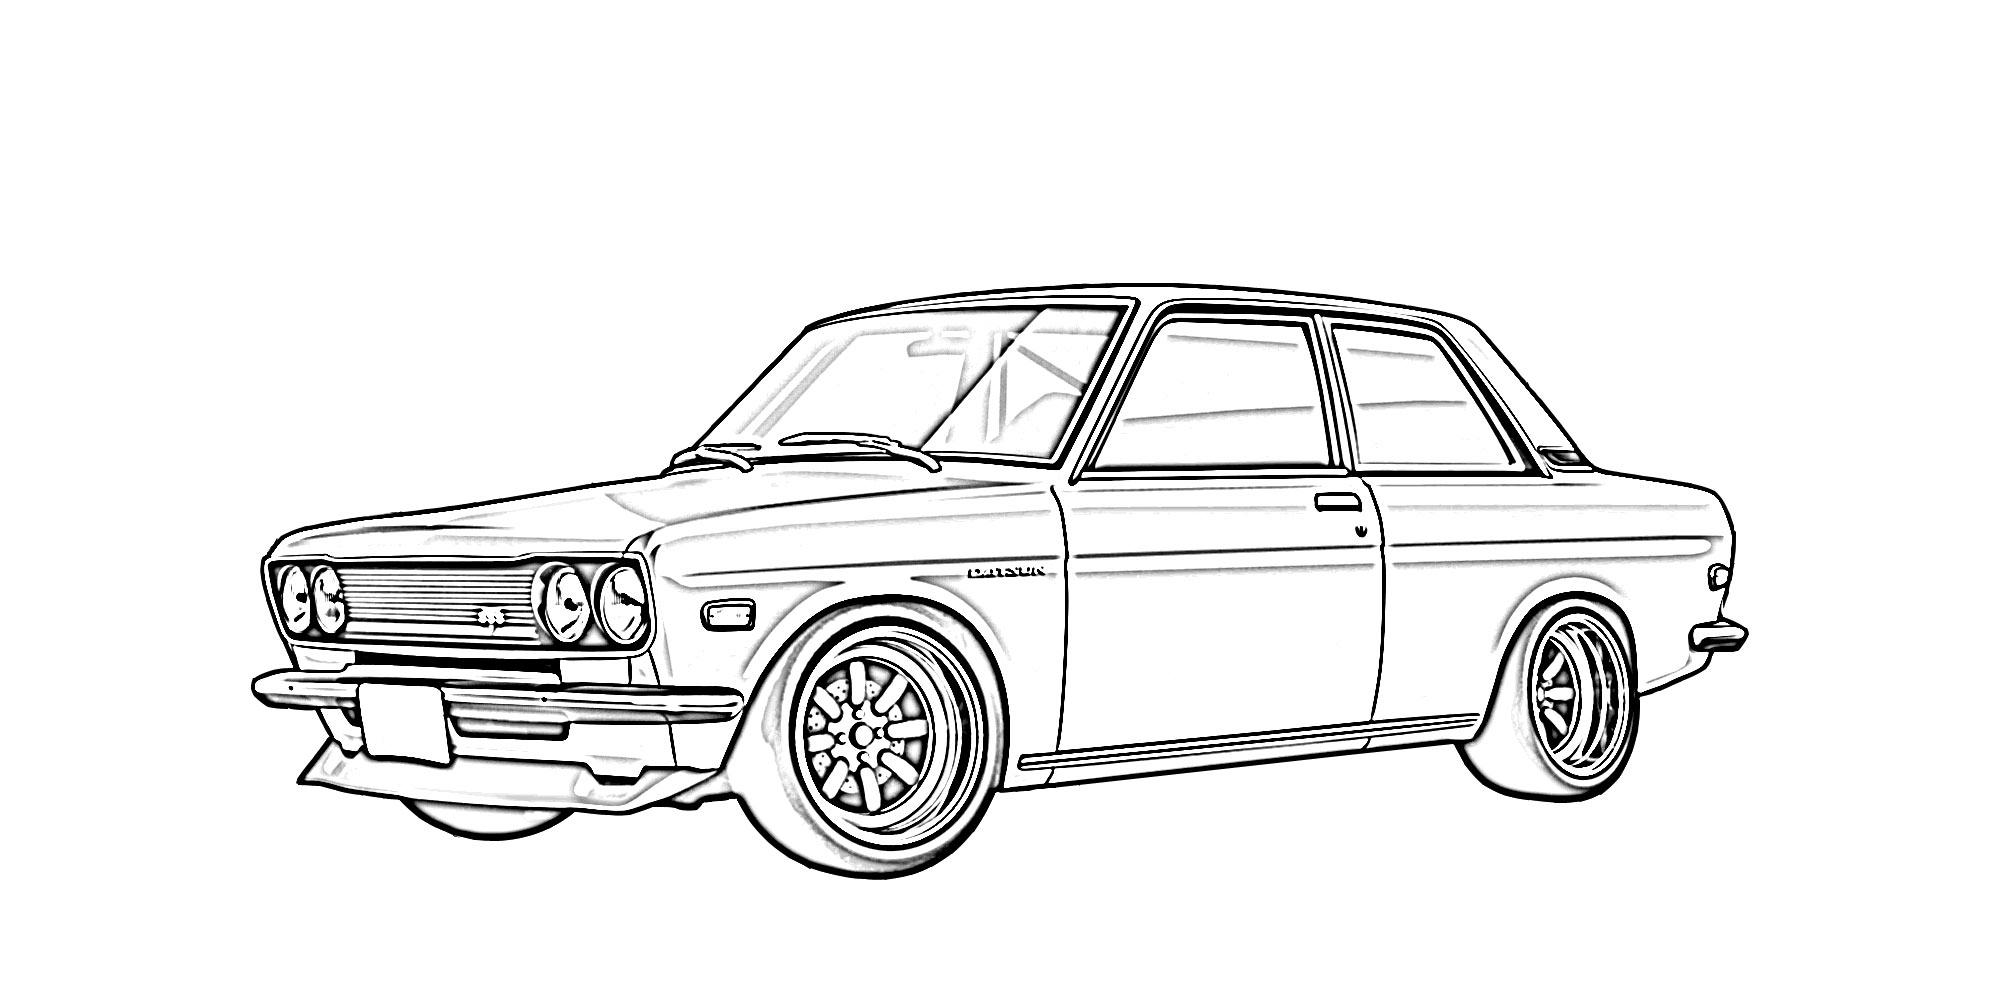 Datsun 510 Drawing Sketch Coloring Page